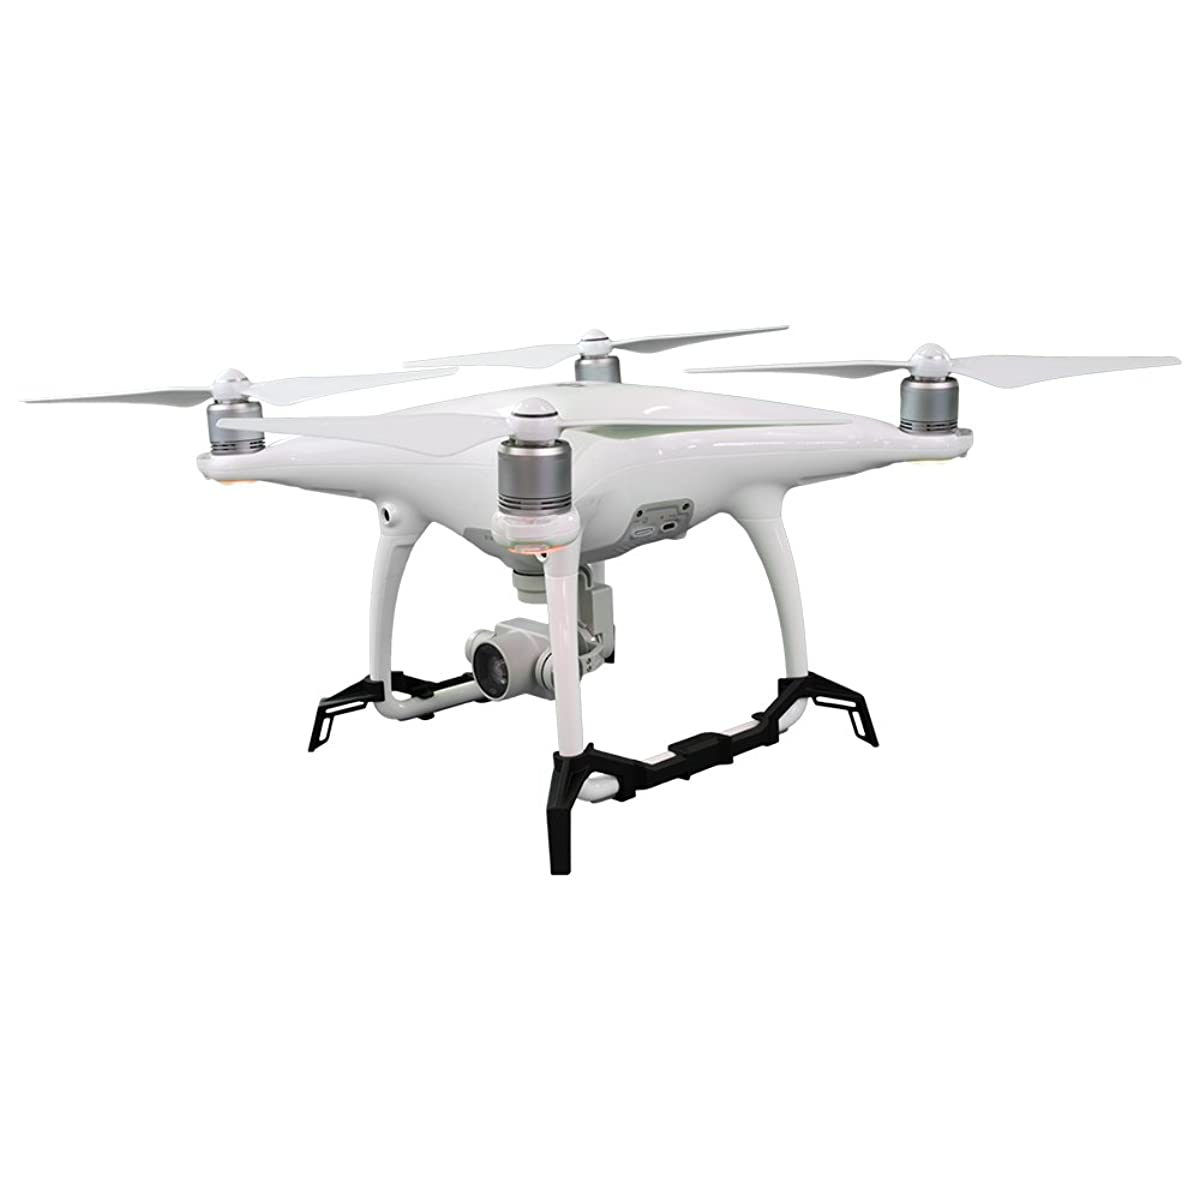 PolarPro DJI Phantom 4 Landing Gear Stabilizers